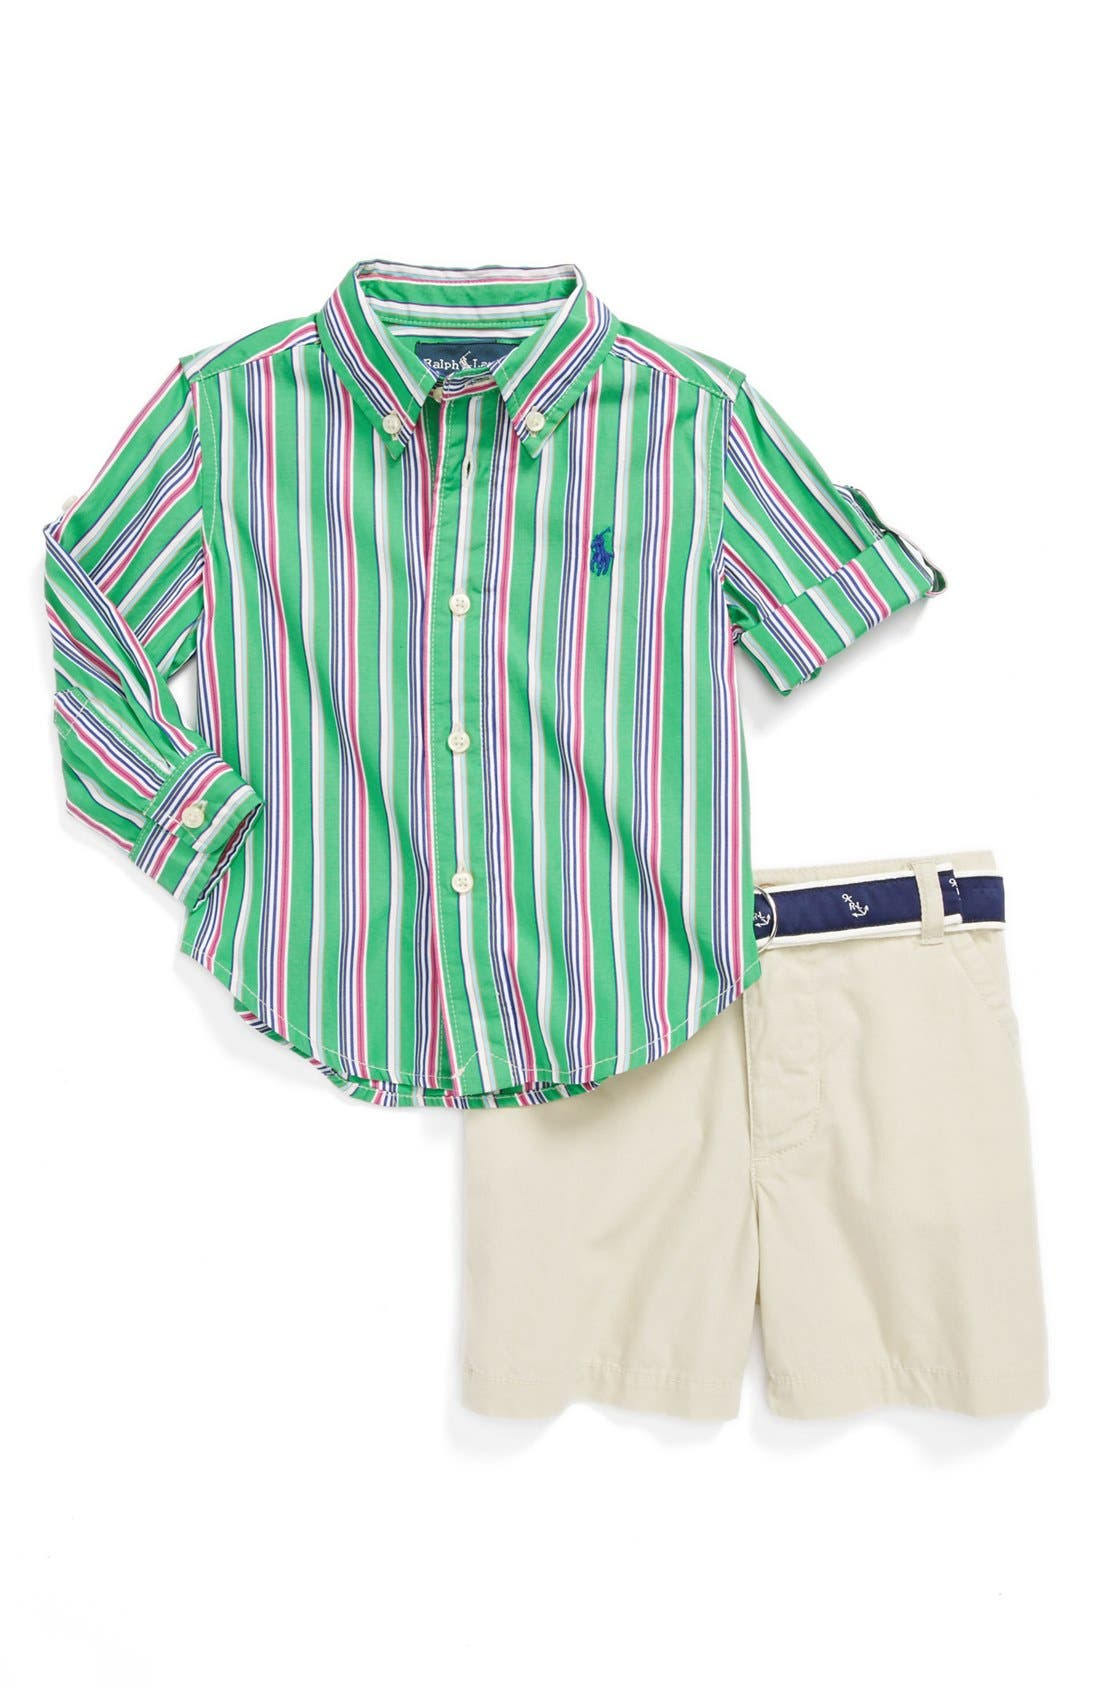 Main Image - Ralph Lauren Woven Shirt & Shorts (Baby Boys)